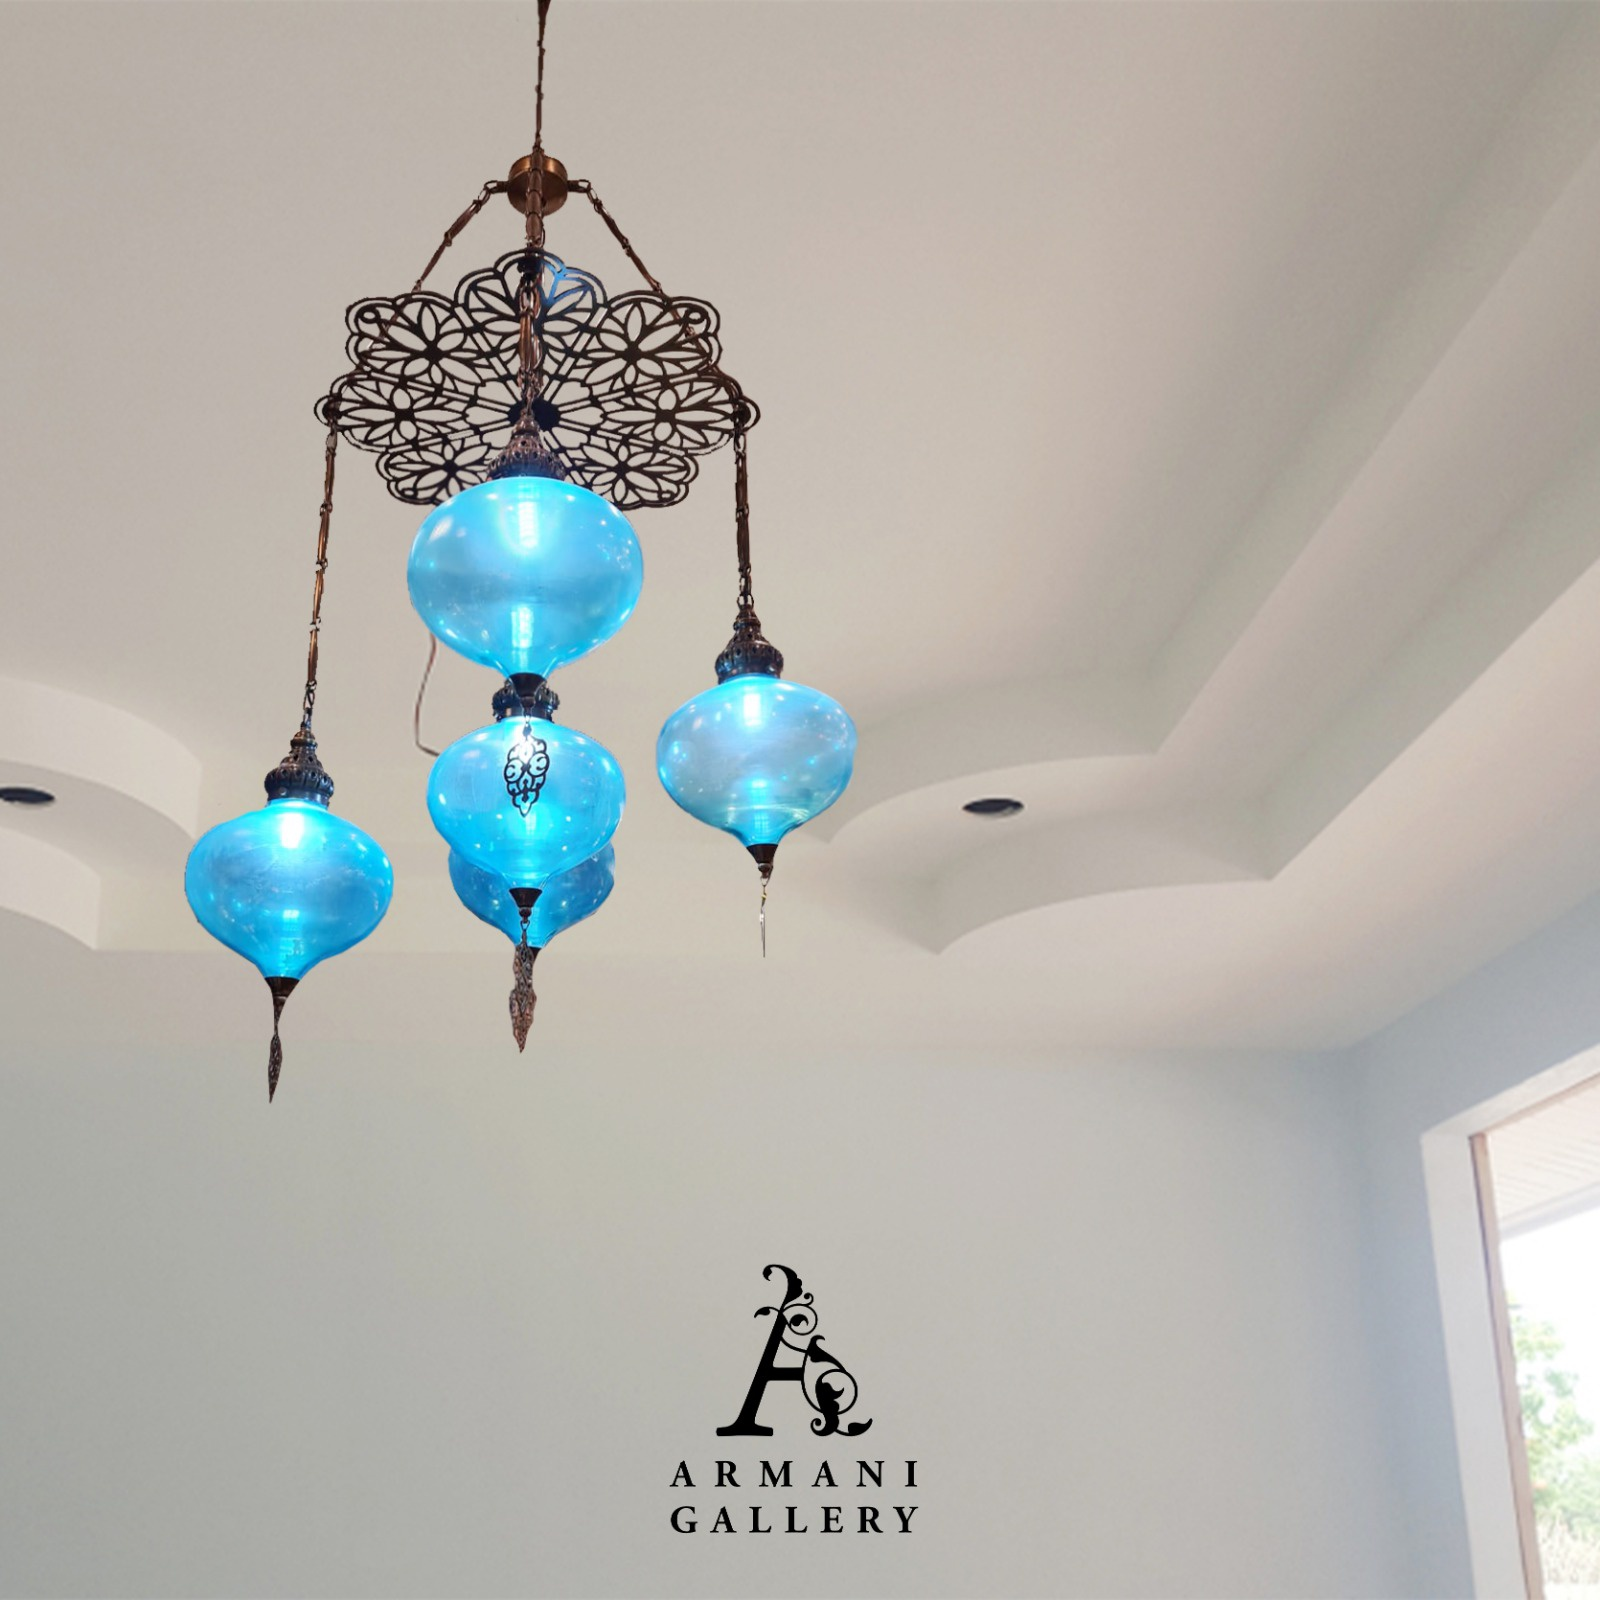 Buy Turkish Ceiling Chandelier SR-1112